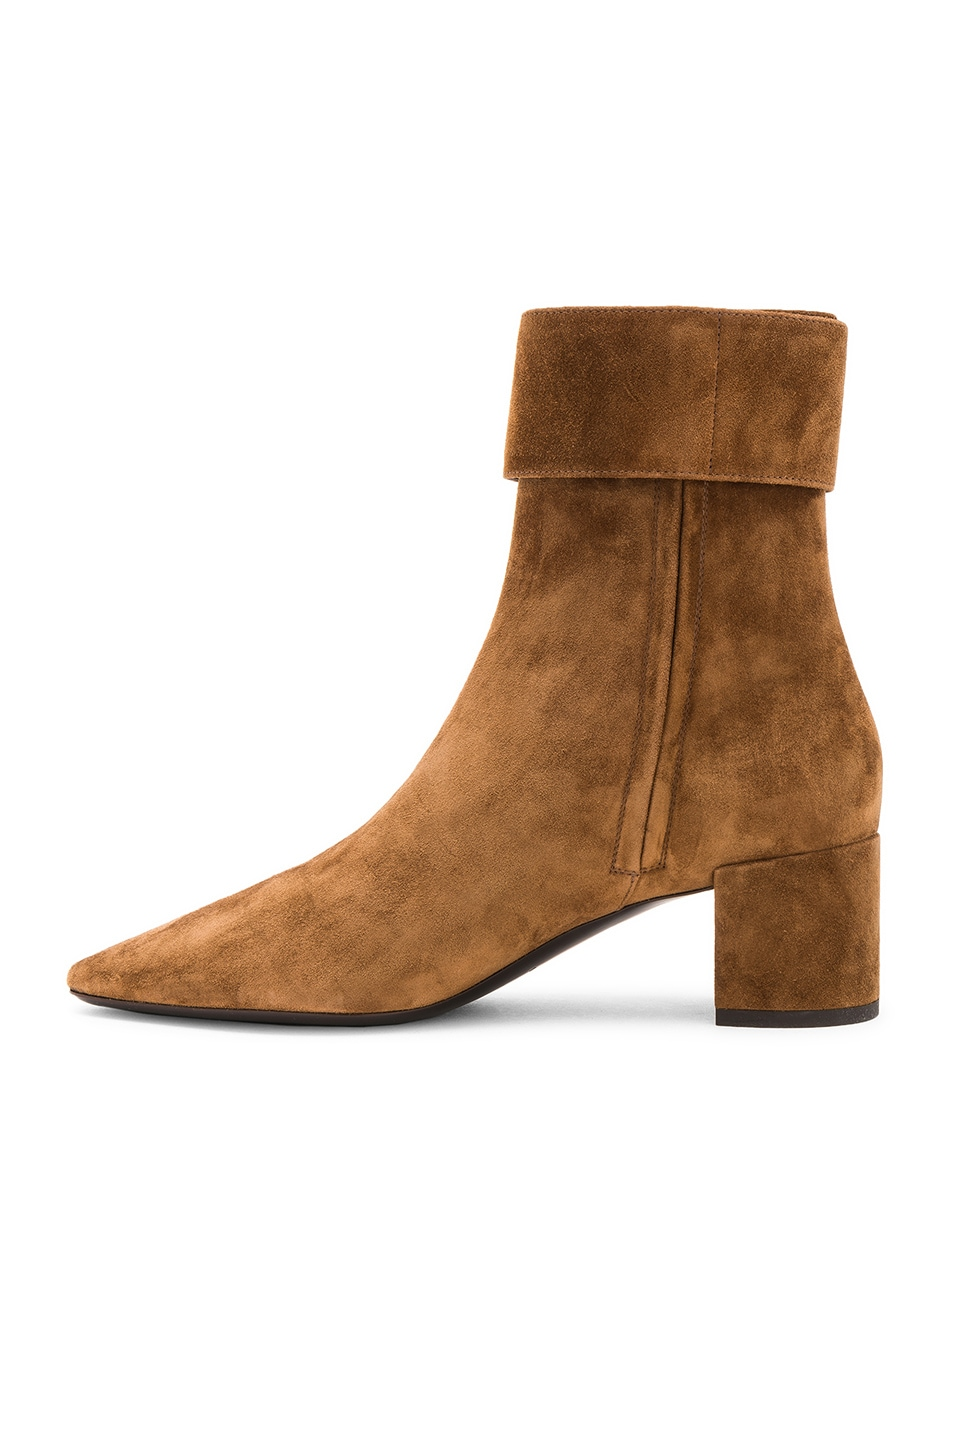 Image 5 of Saint Laurent Suede Joplin Buckle Ankle Boots in Caramel